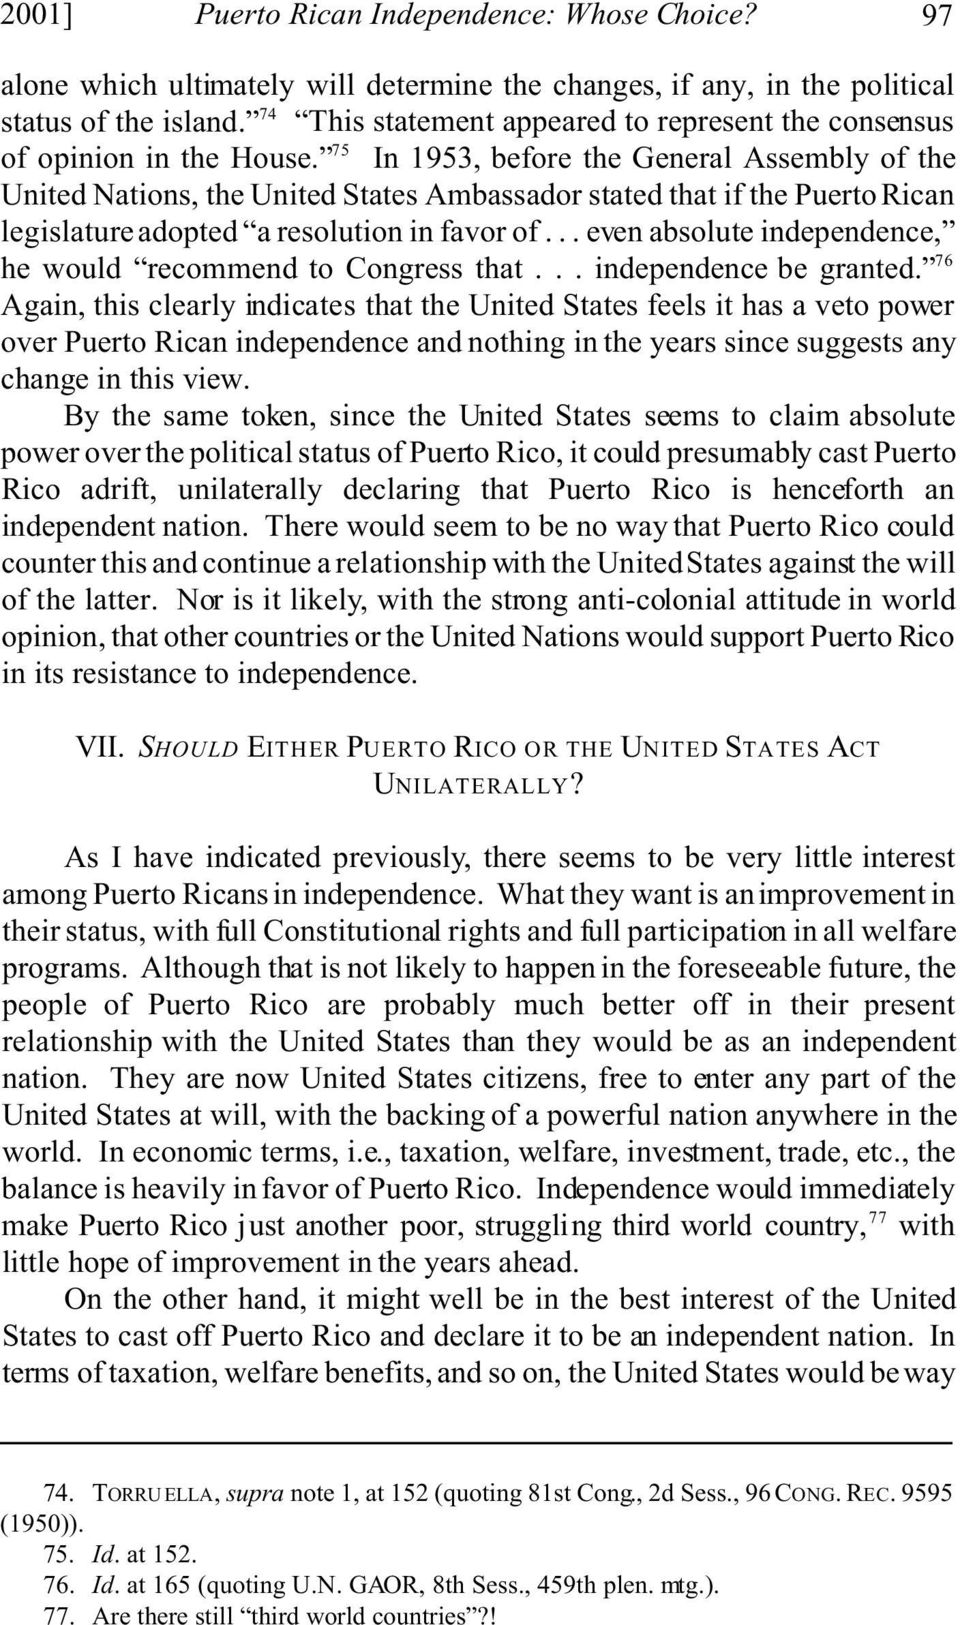 75 In 1953, before the General Assembly of the United Nations, the United States Ambassador stated that if the Puerto Rican legislature adopted a resolution in favor of.